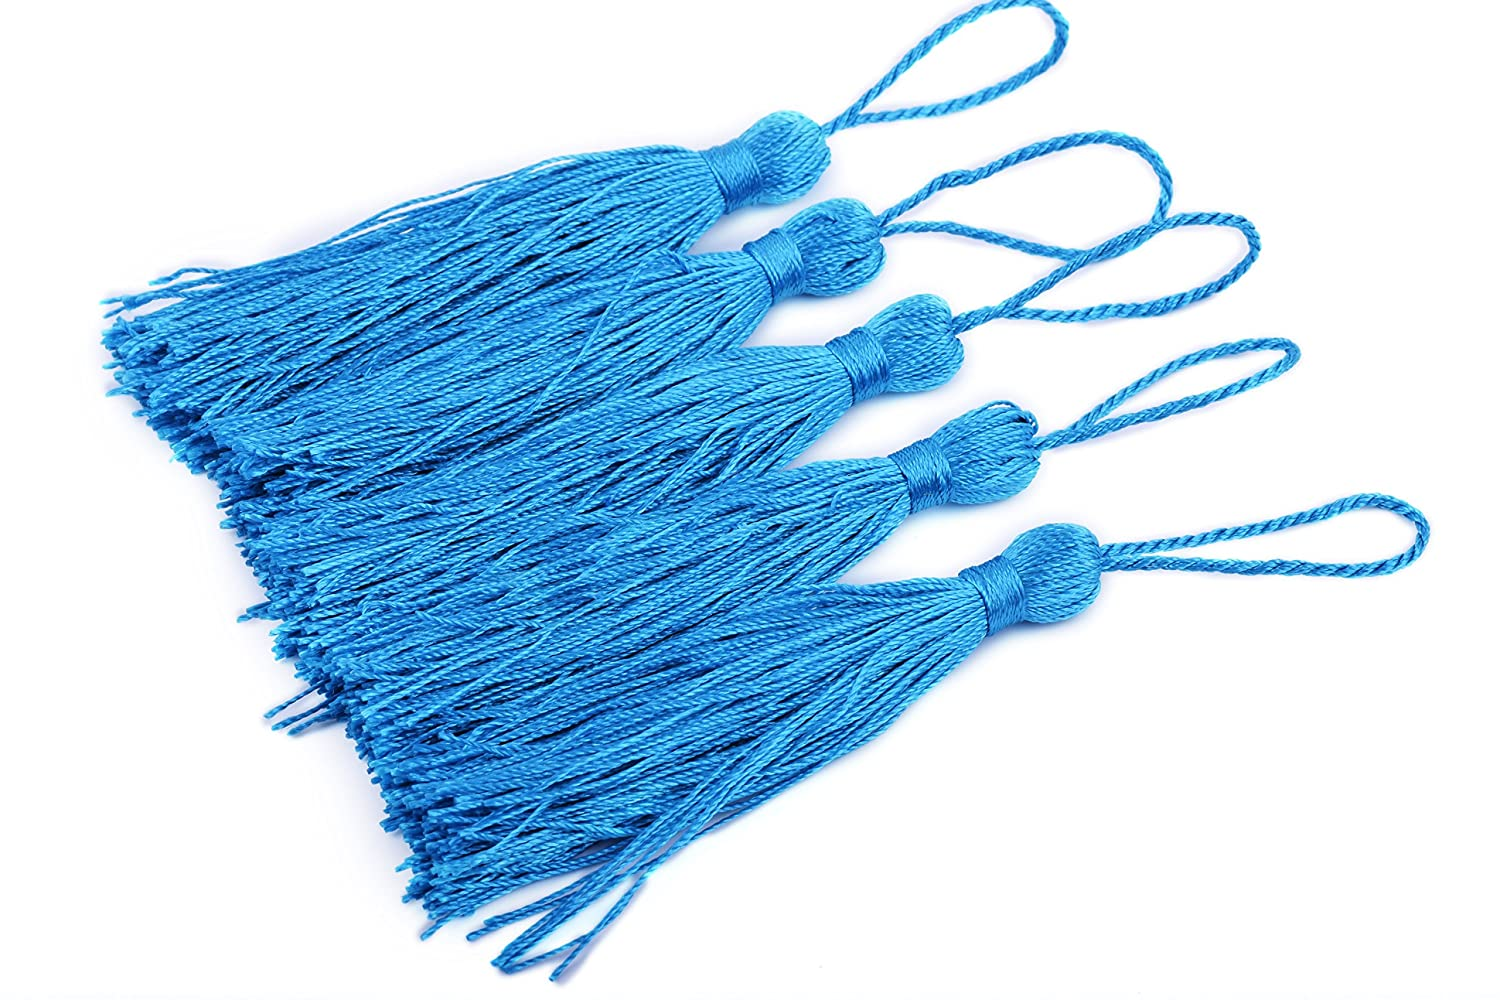 3.5 Soft Craft Mini Tassels with Loops for Bookmarks Jewelry Making Decoration DIY Projects Apple Green KONMAY 20pcs Silky Handmade Tiny